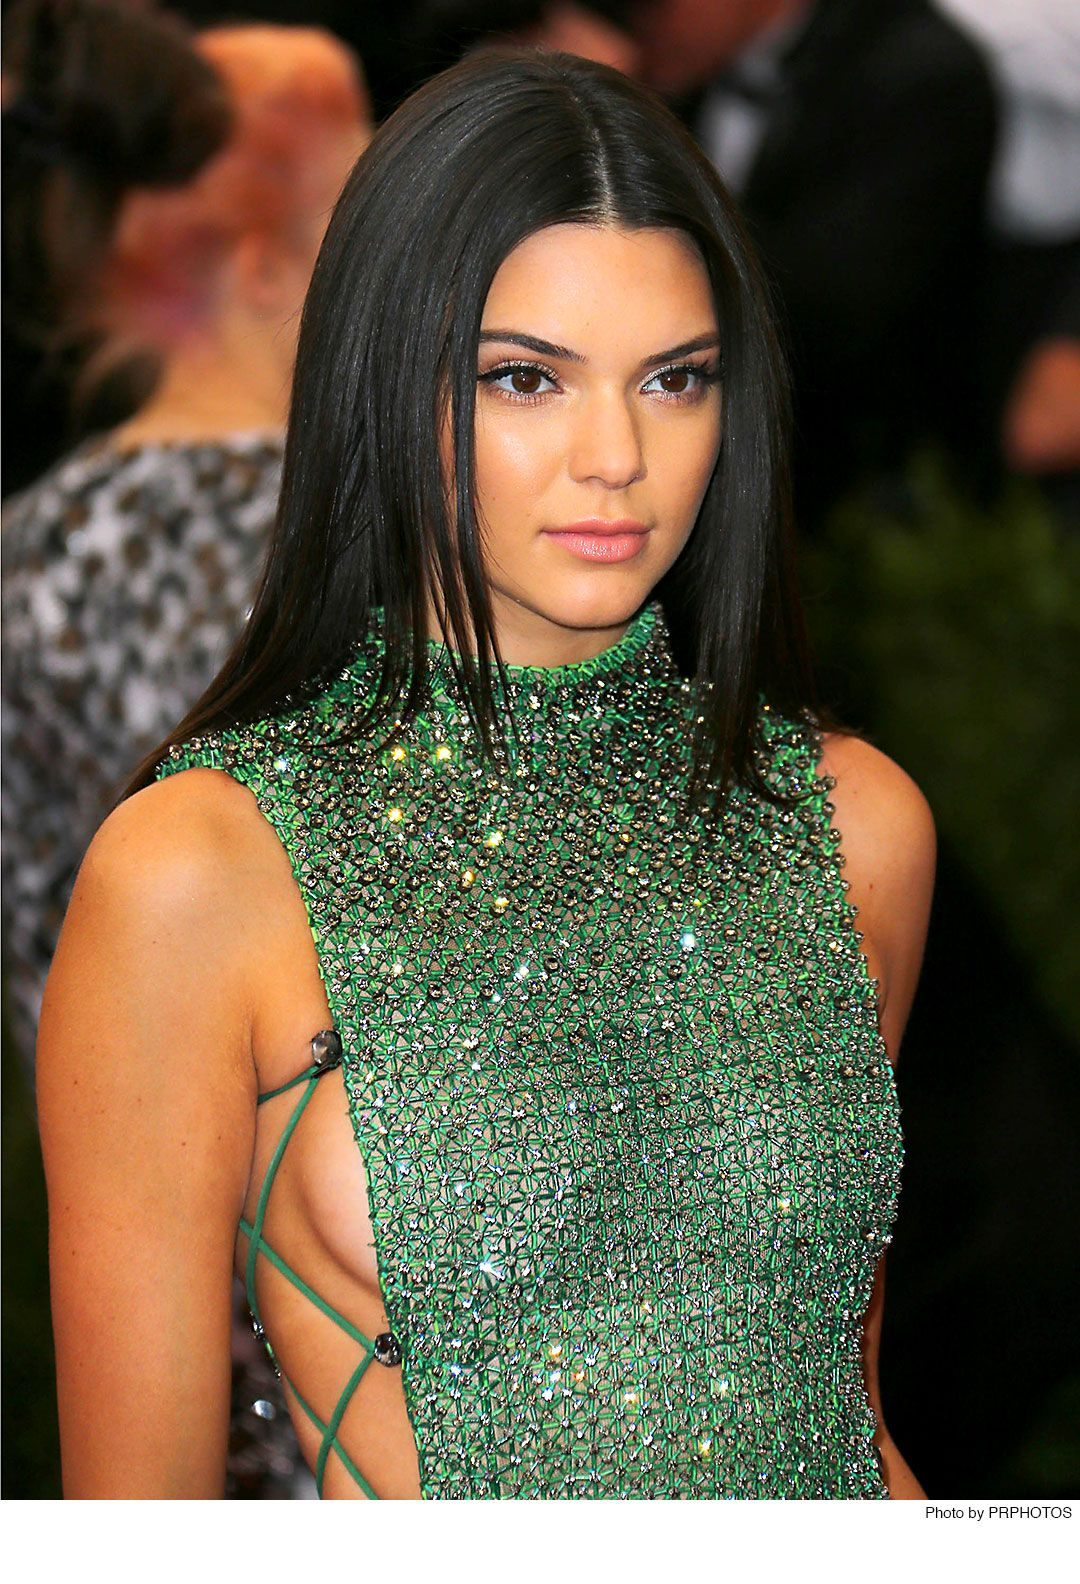 kendall jenner met gala 2015 - Google Search